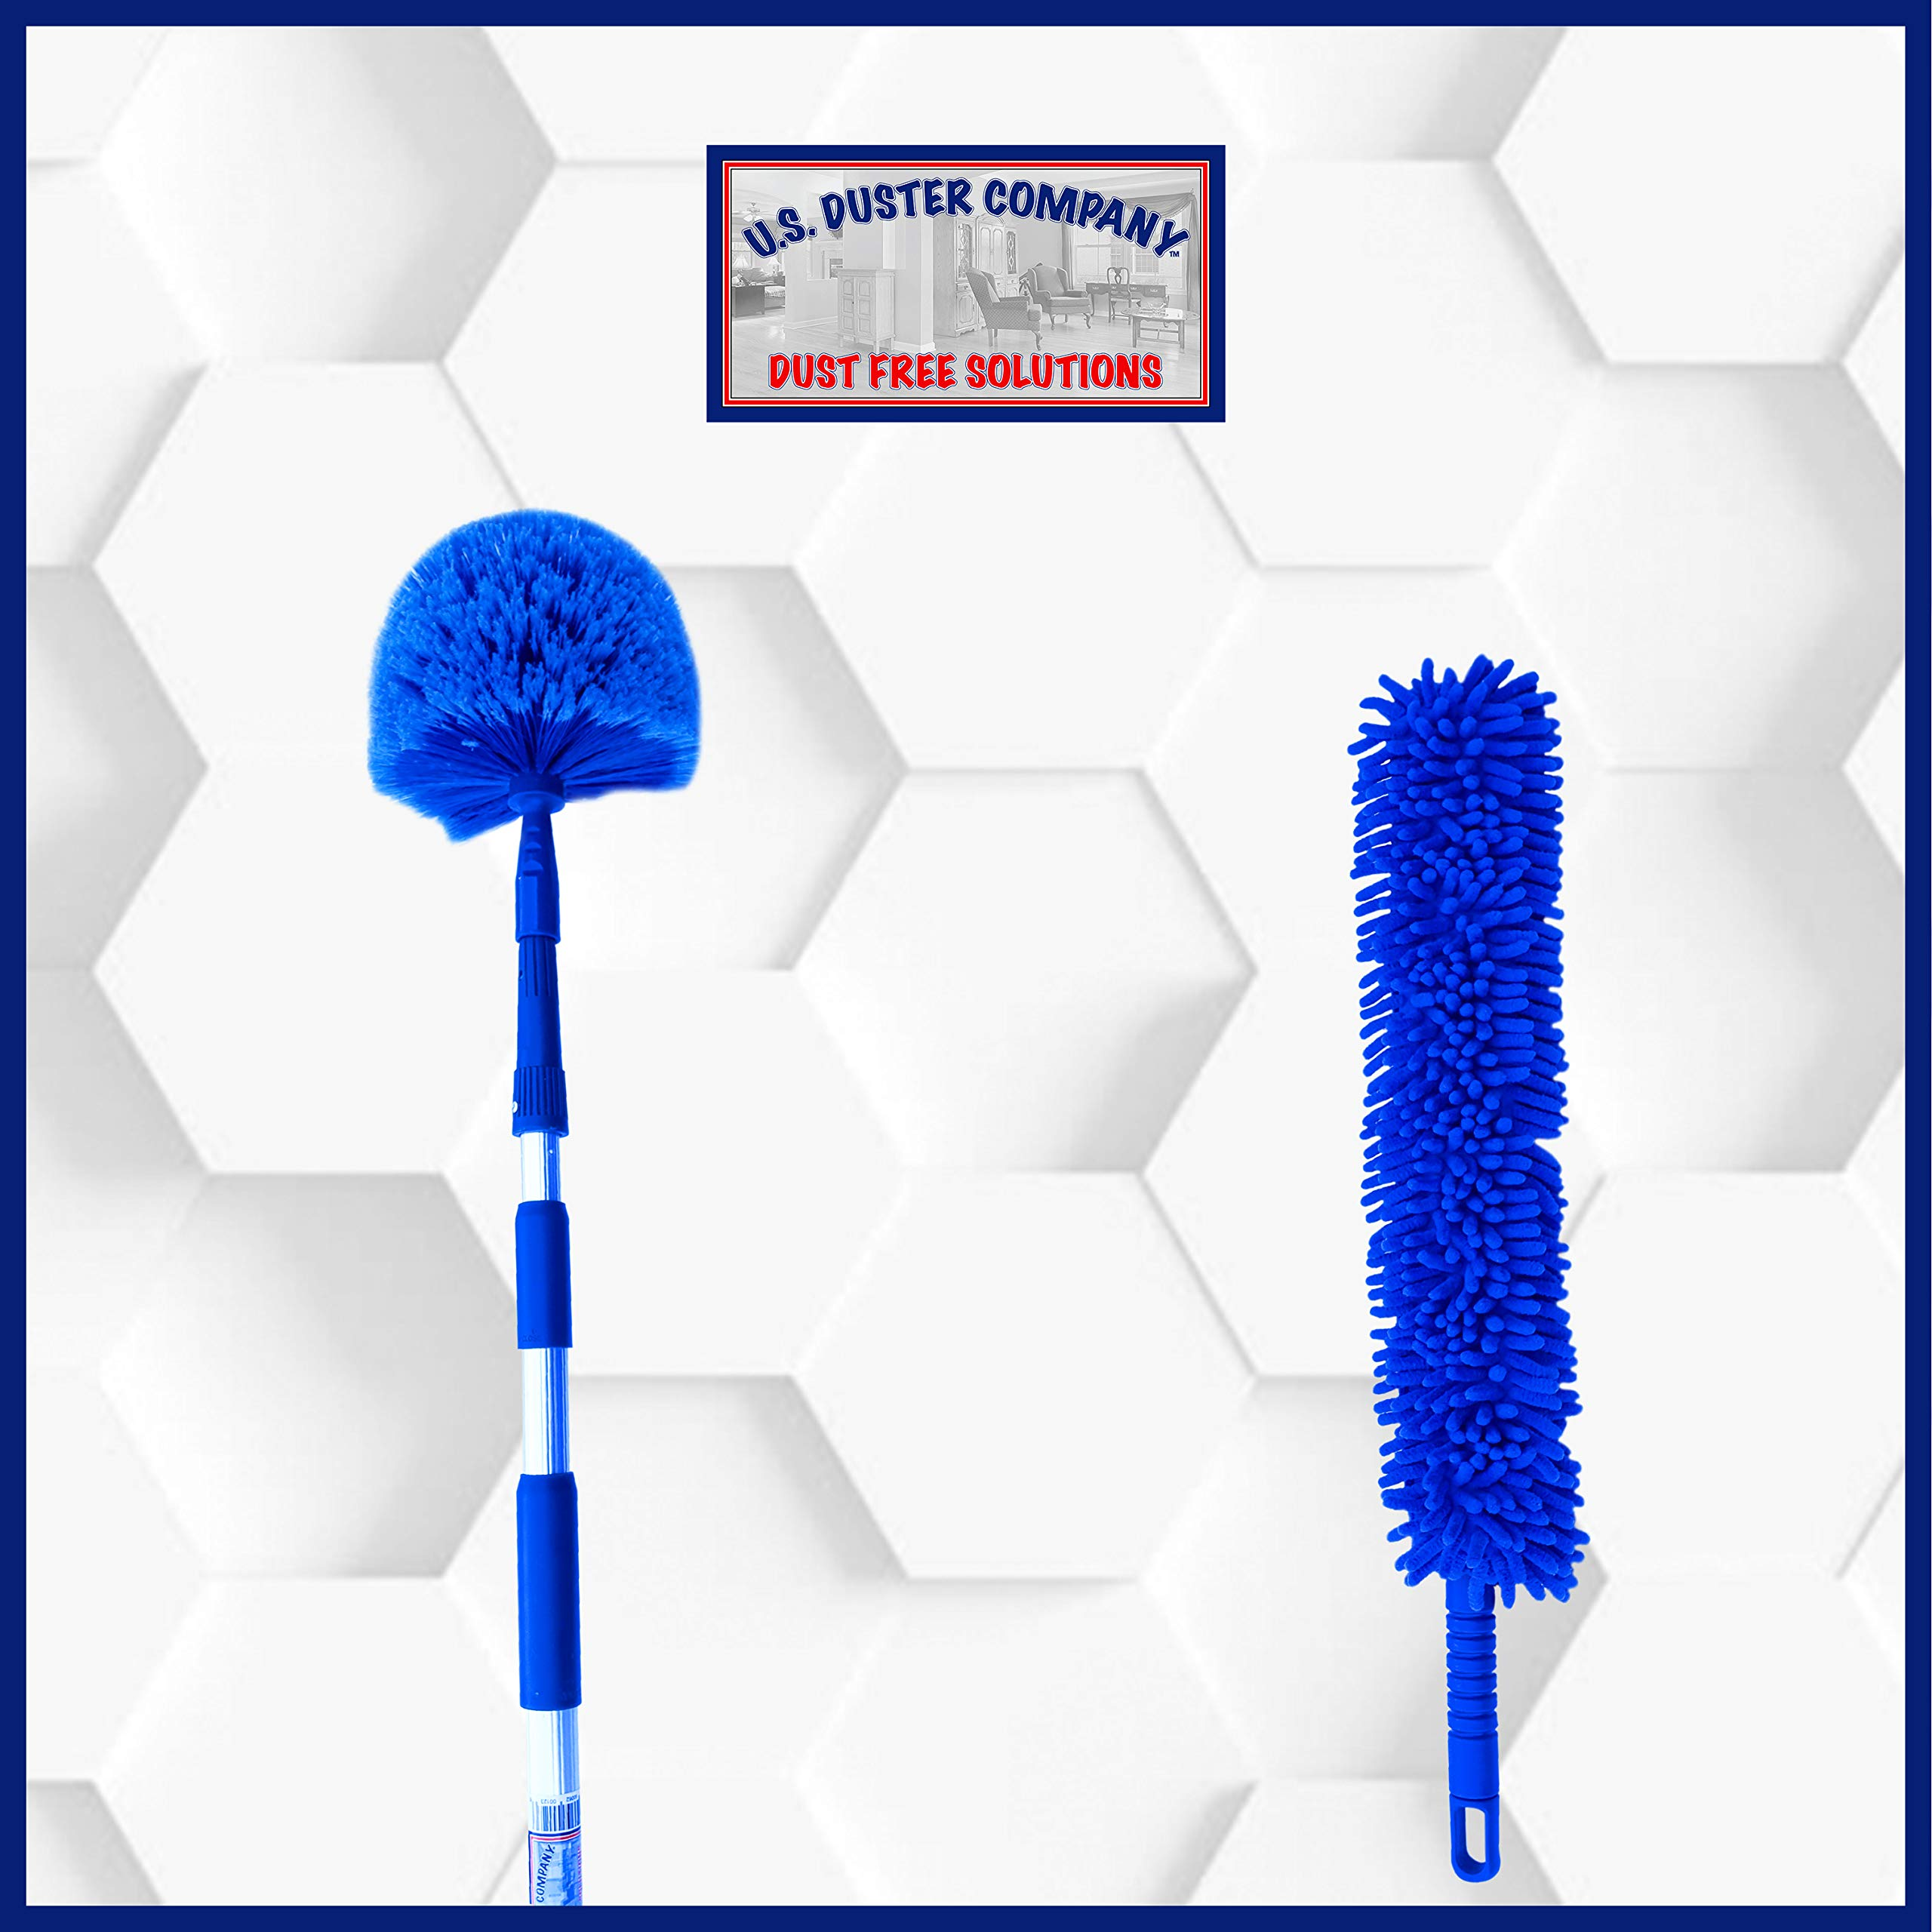 Ceiling Fan Duster Cobweb Duster, Extendable Reach 20 feet,   3-Stage Aluminum Telescoping Pole   Extends for High Ceiling Duster   Long Handle Plus 2 Duster Heads by U.S. Duster Company (Image #9)